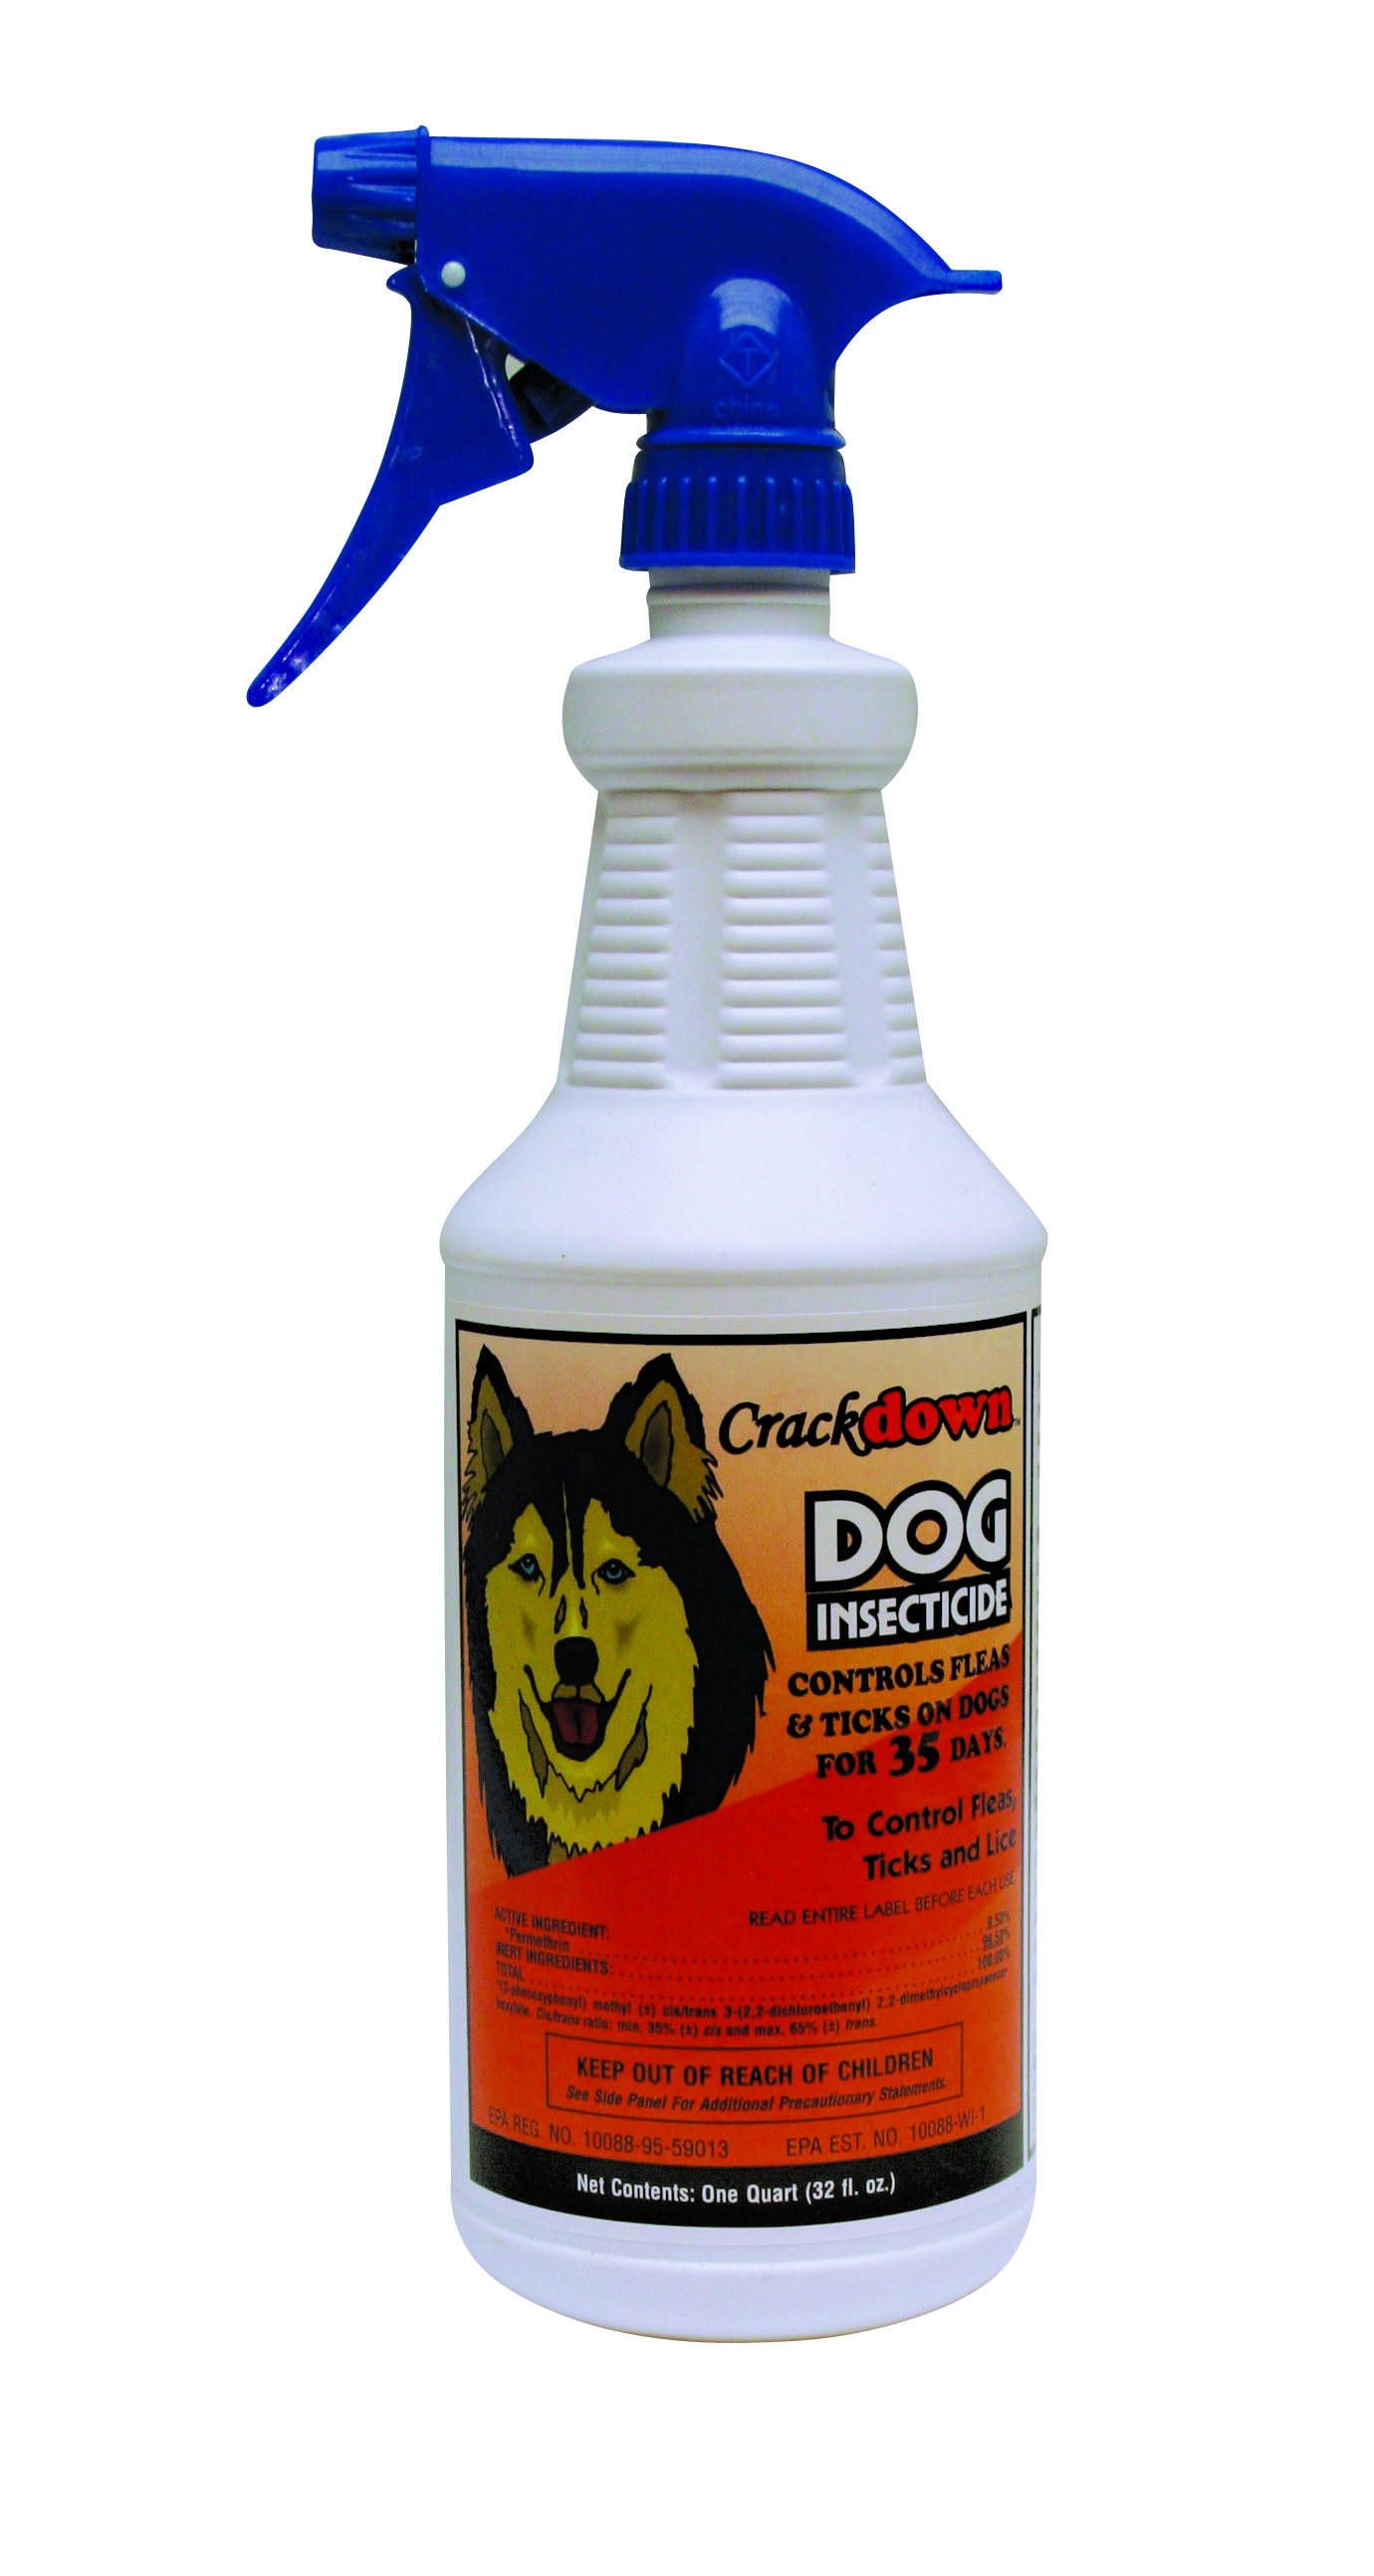 DOG INSECTICIDE 1 QUART